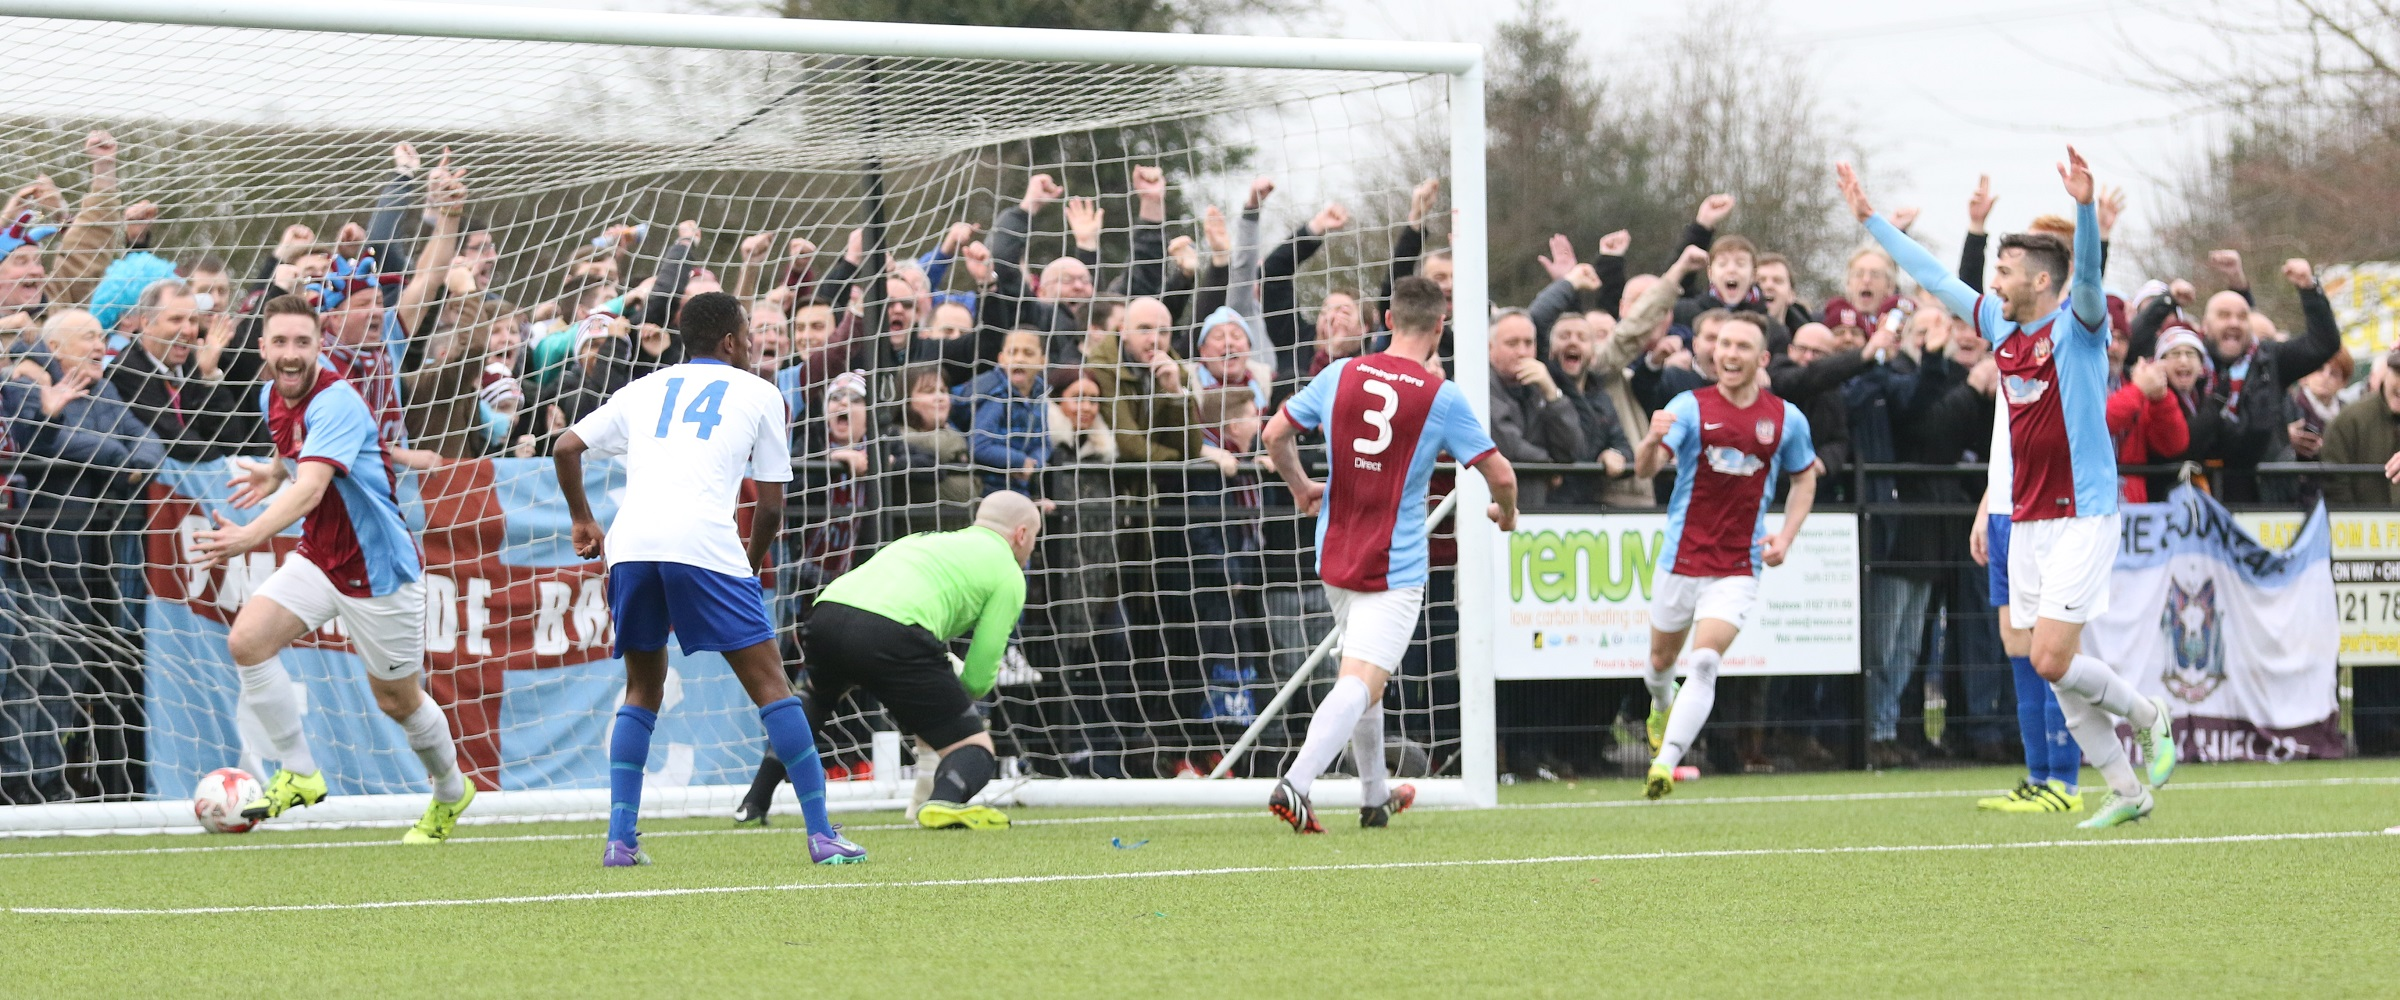 Match Preview: South Shields vs Coleshill Town – second leg